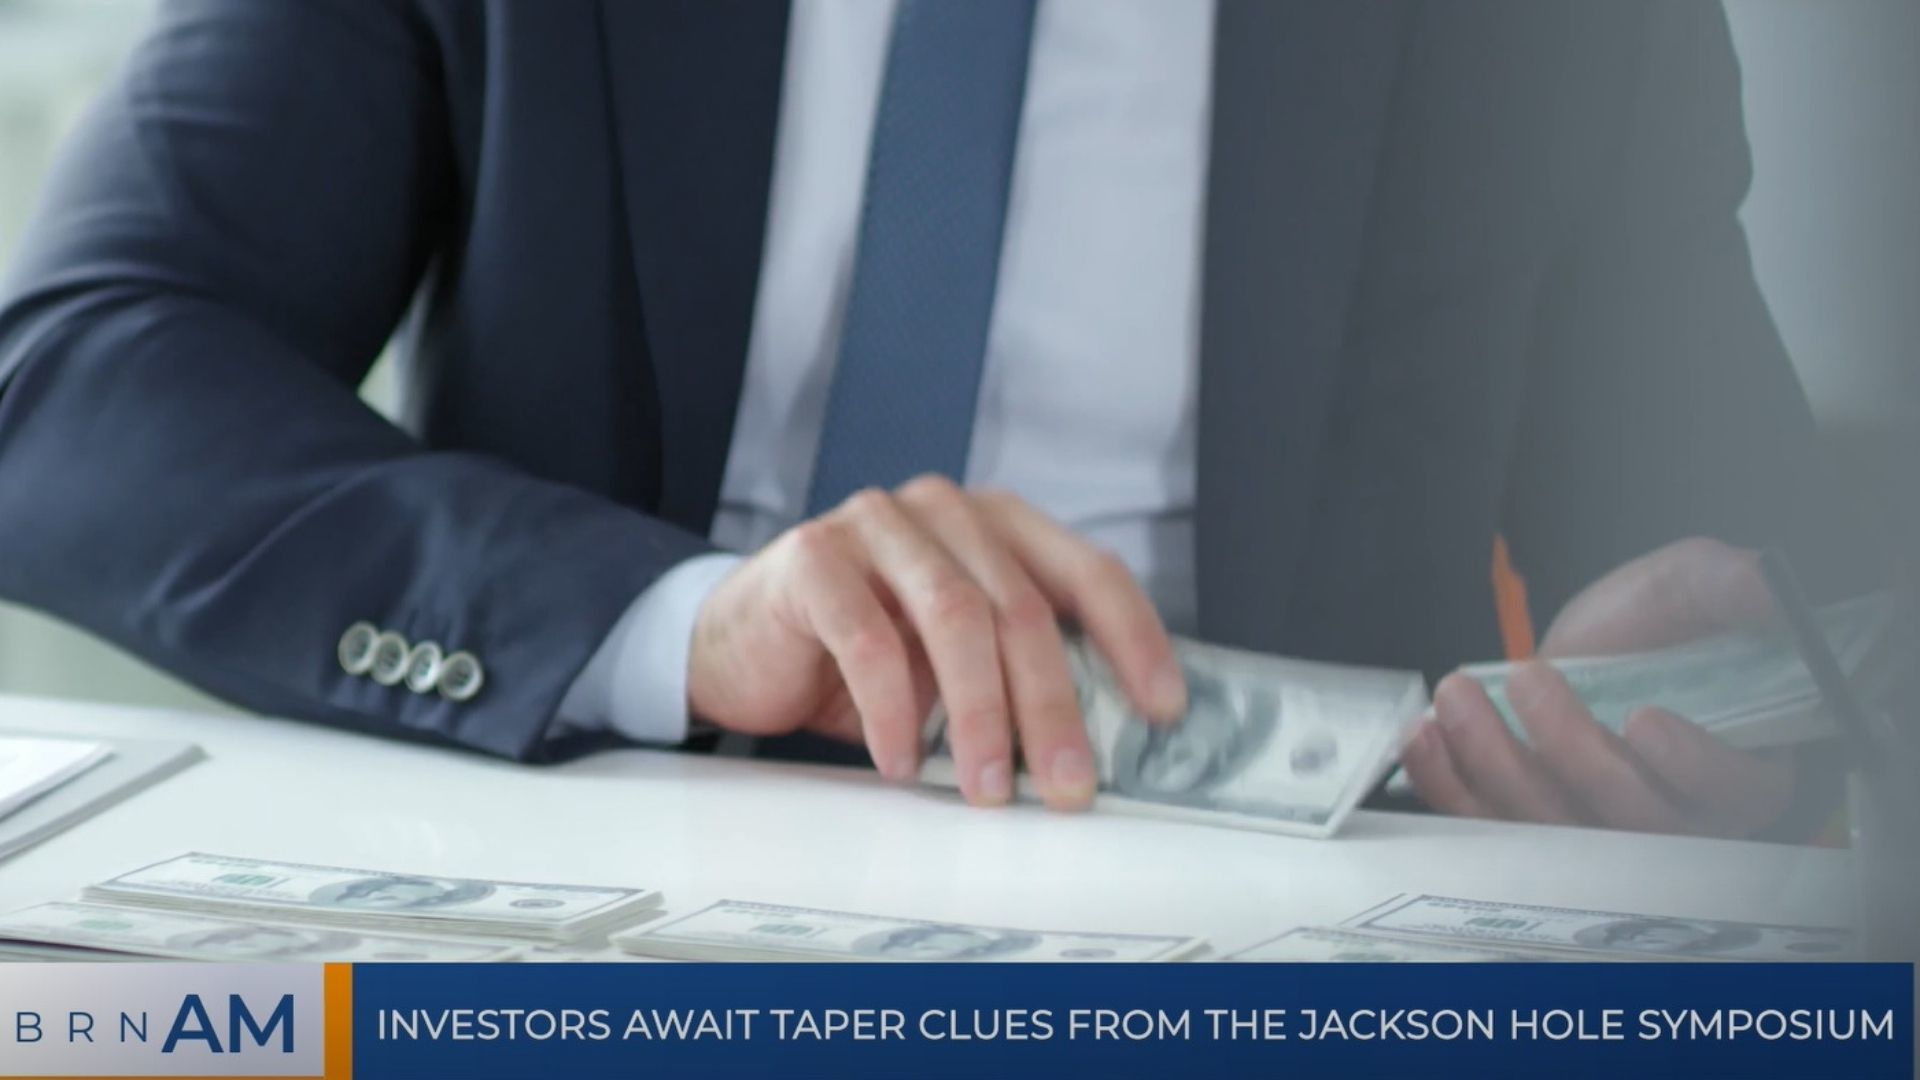 BRN AM   Investors await taper clues from the Jackson Hole Symposium